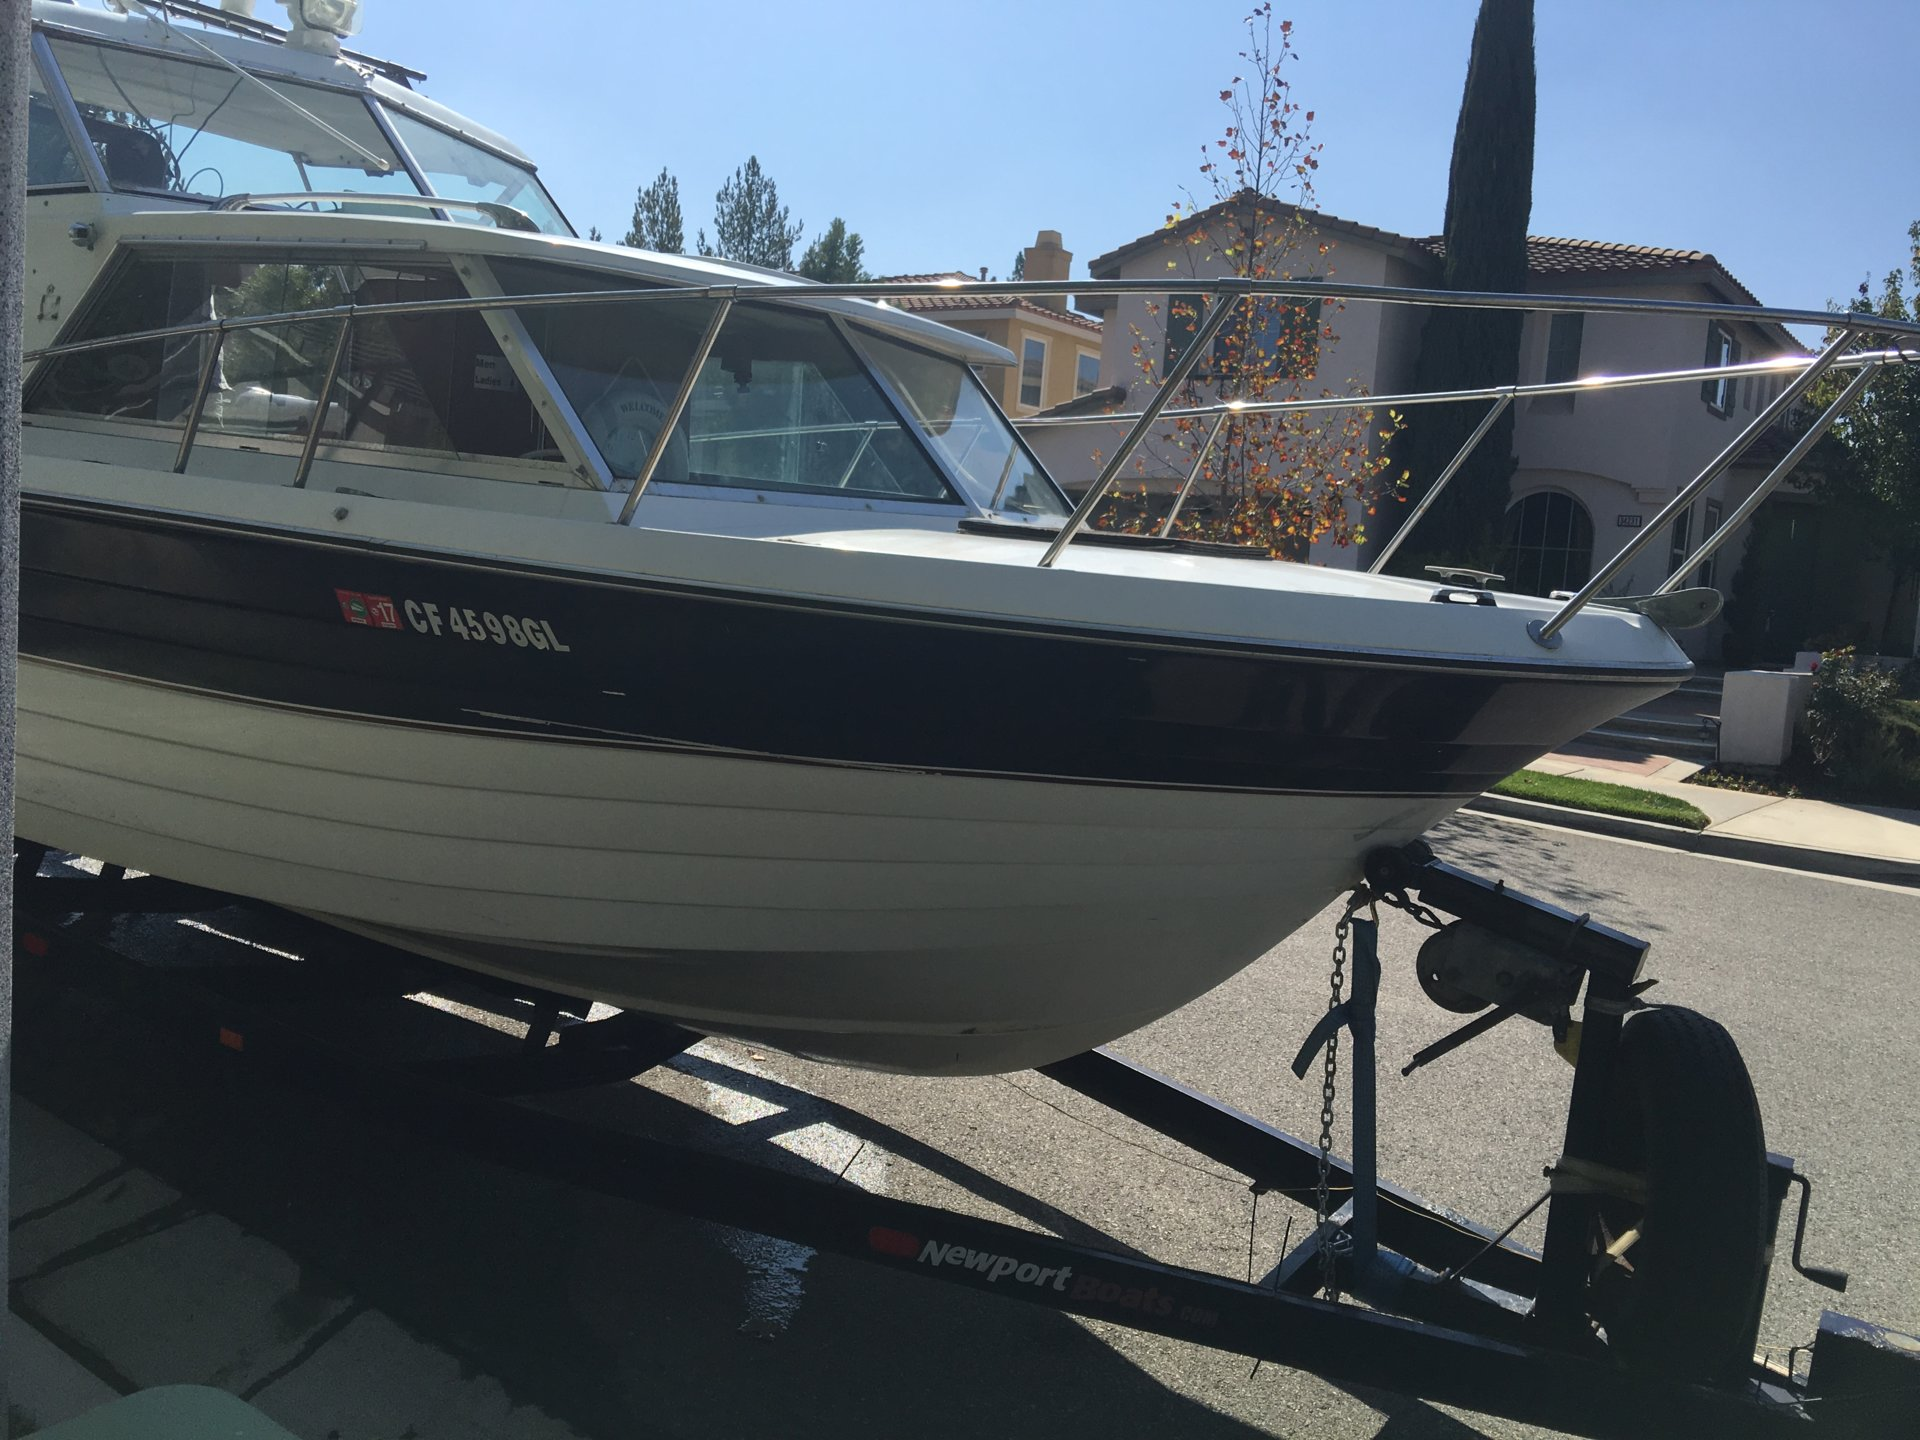 4 Foot Led Lights >> 1978 Bellboy 25ft Cabin Cruiser(needs some work) free!!! | Bloodydecks